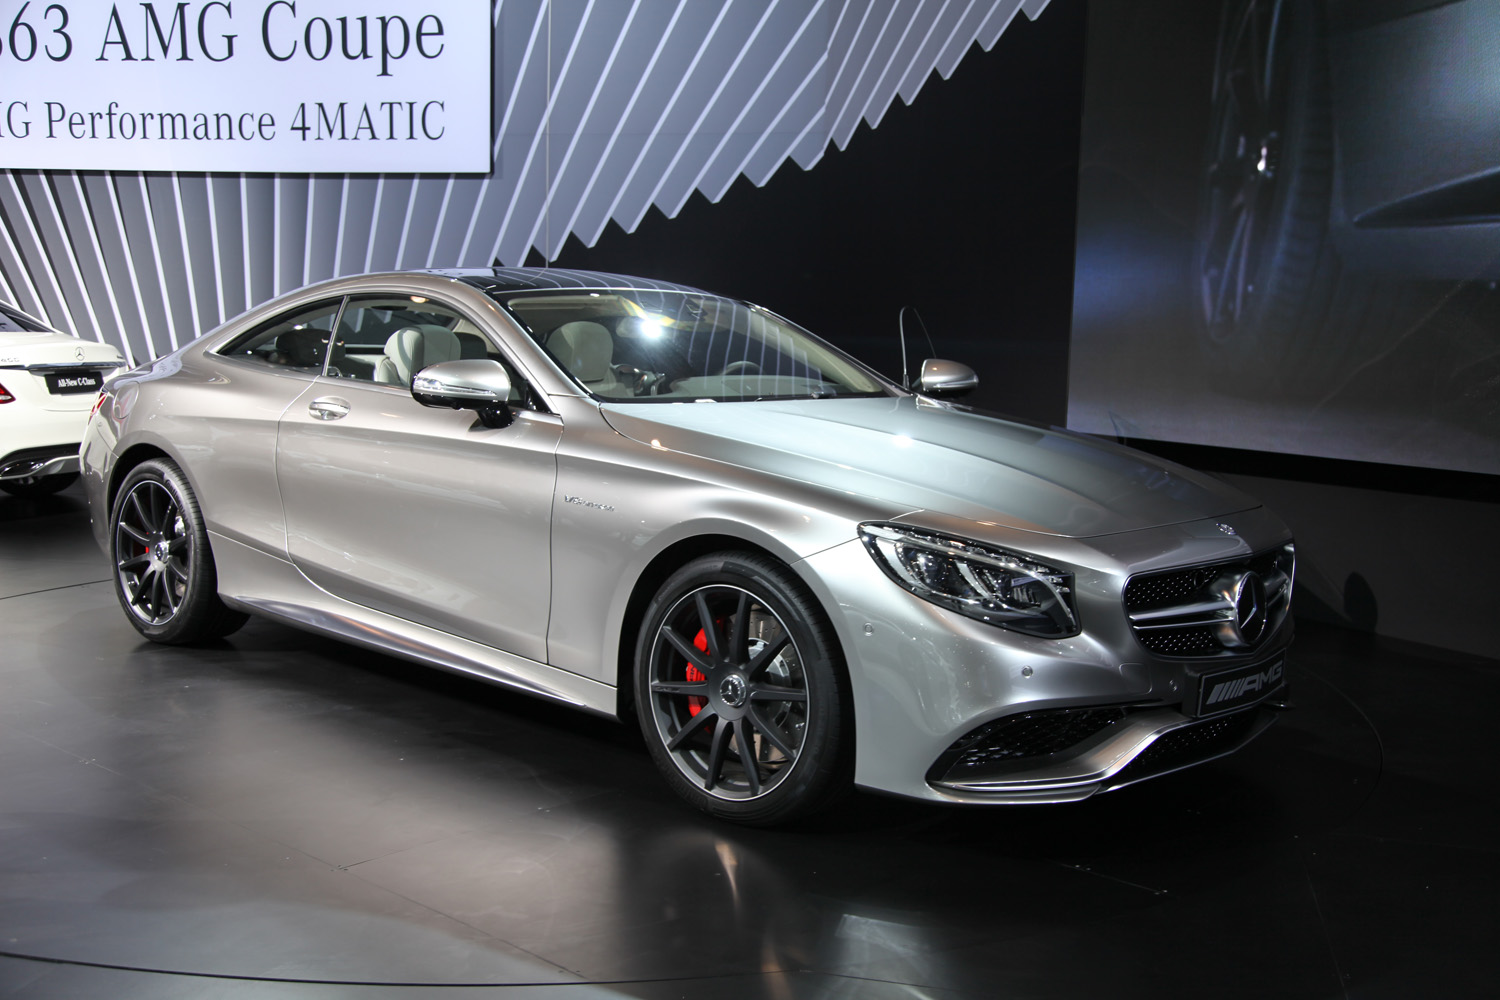 new york 2014 mercedes s 63 amg coup. Black Bedroom Furniture Sets. Home Design Ideas